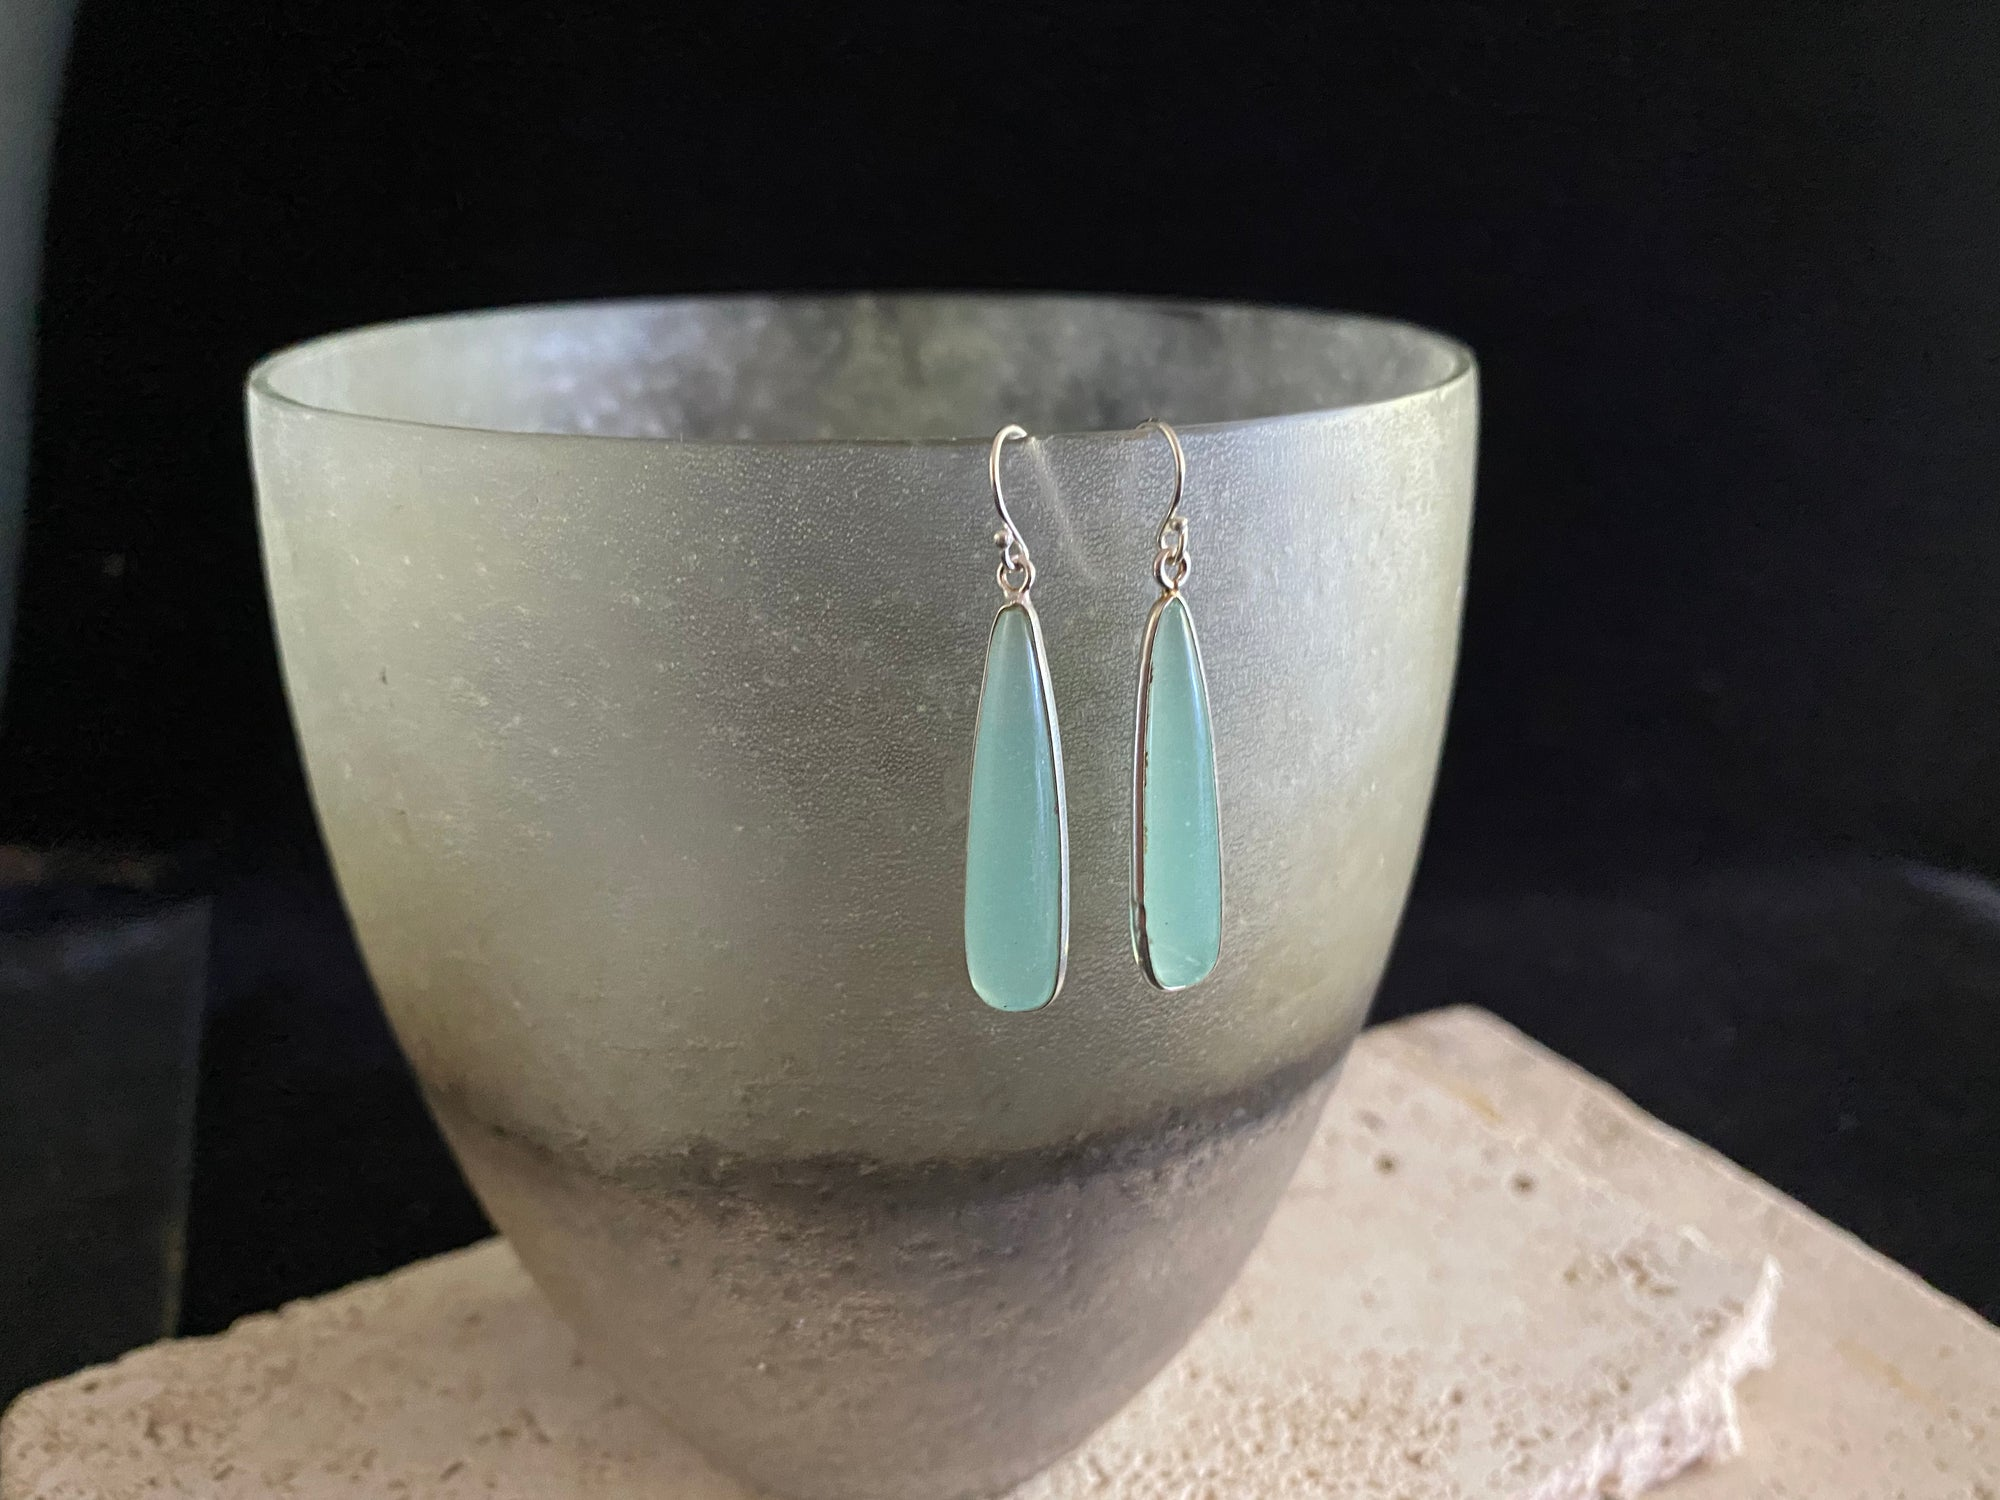 Blue chalcedony teardrop earrings set in sterling silver with a sterling silver hook. 4.5 cm drop